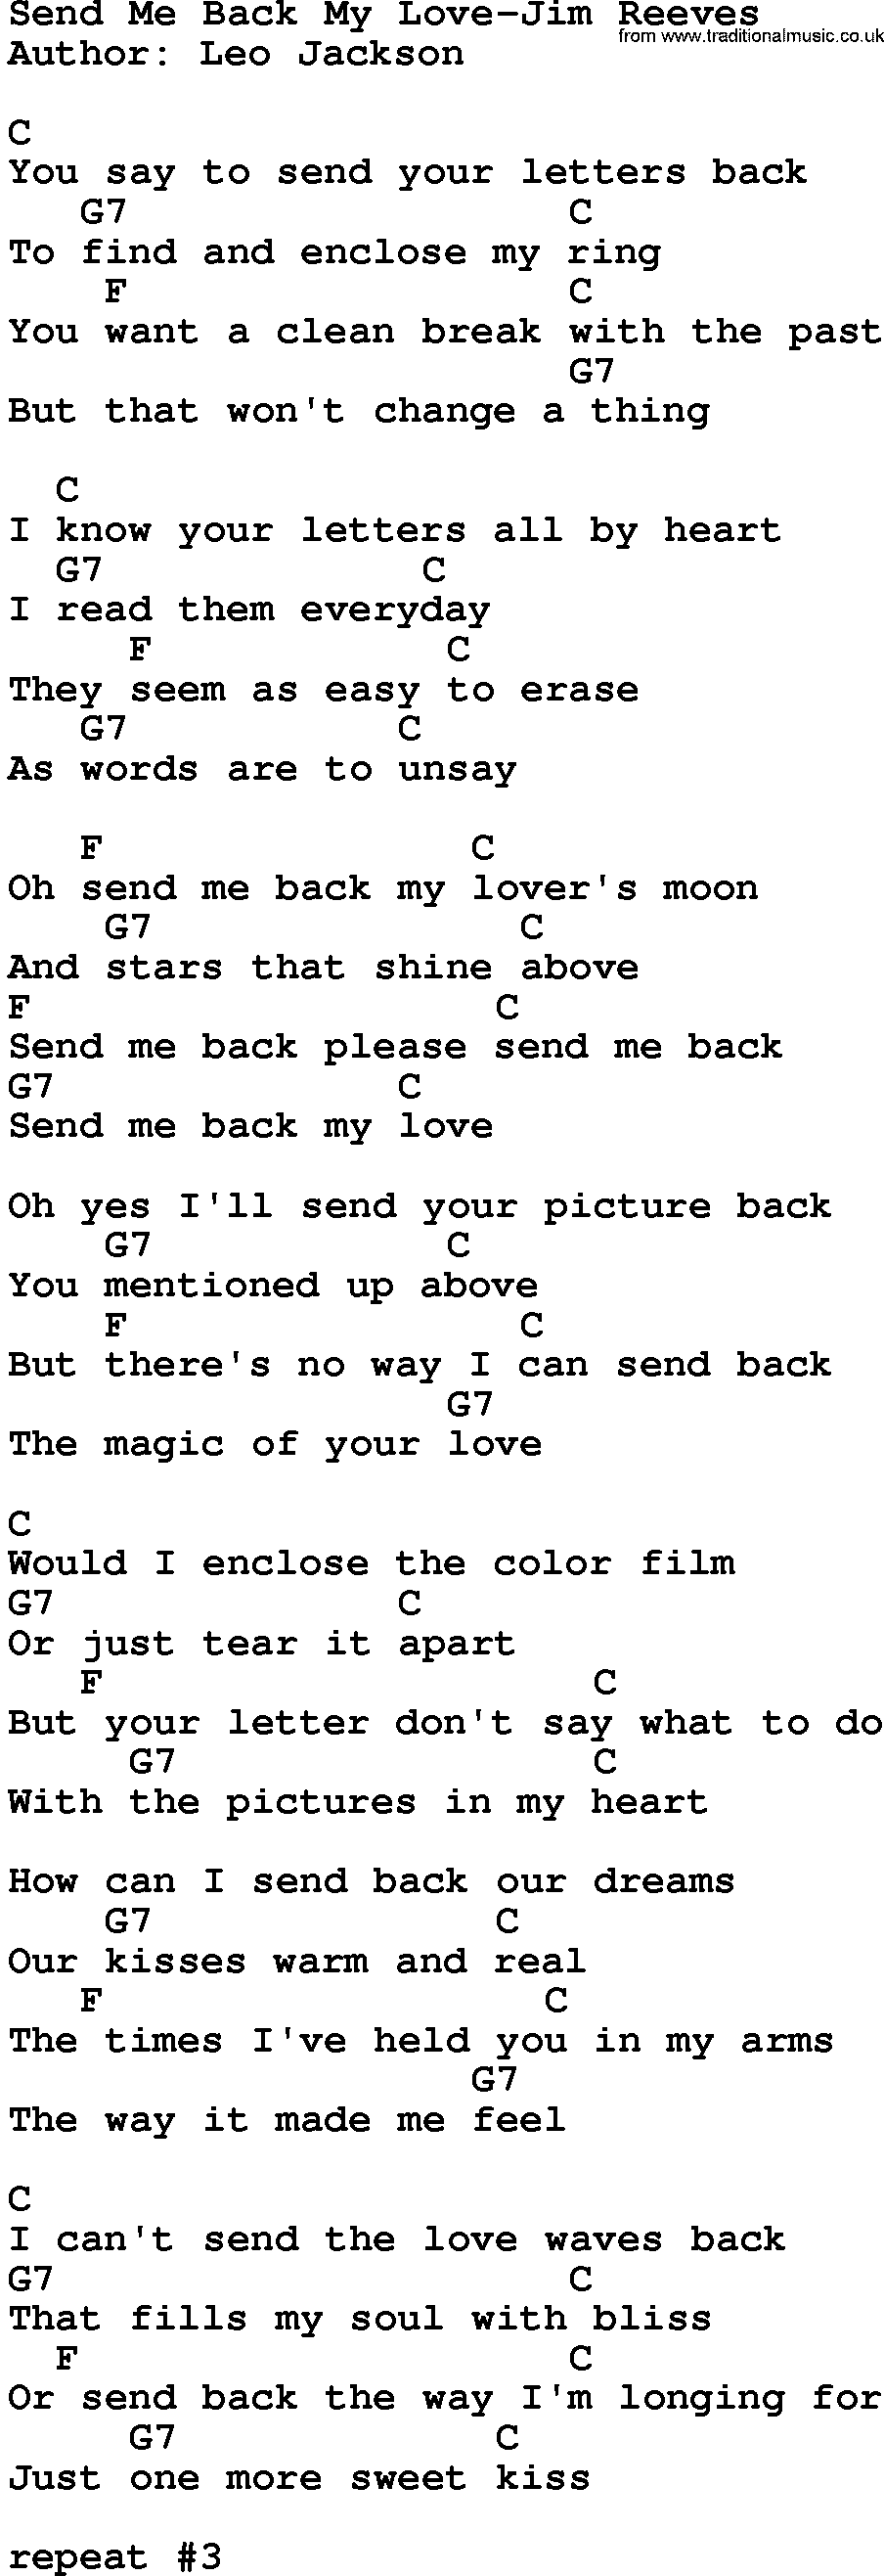 send your love to me lyrics